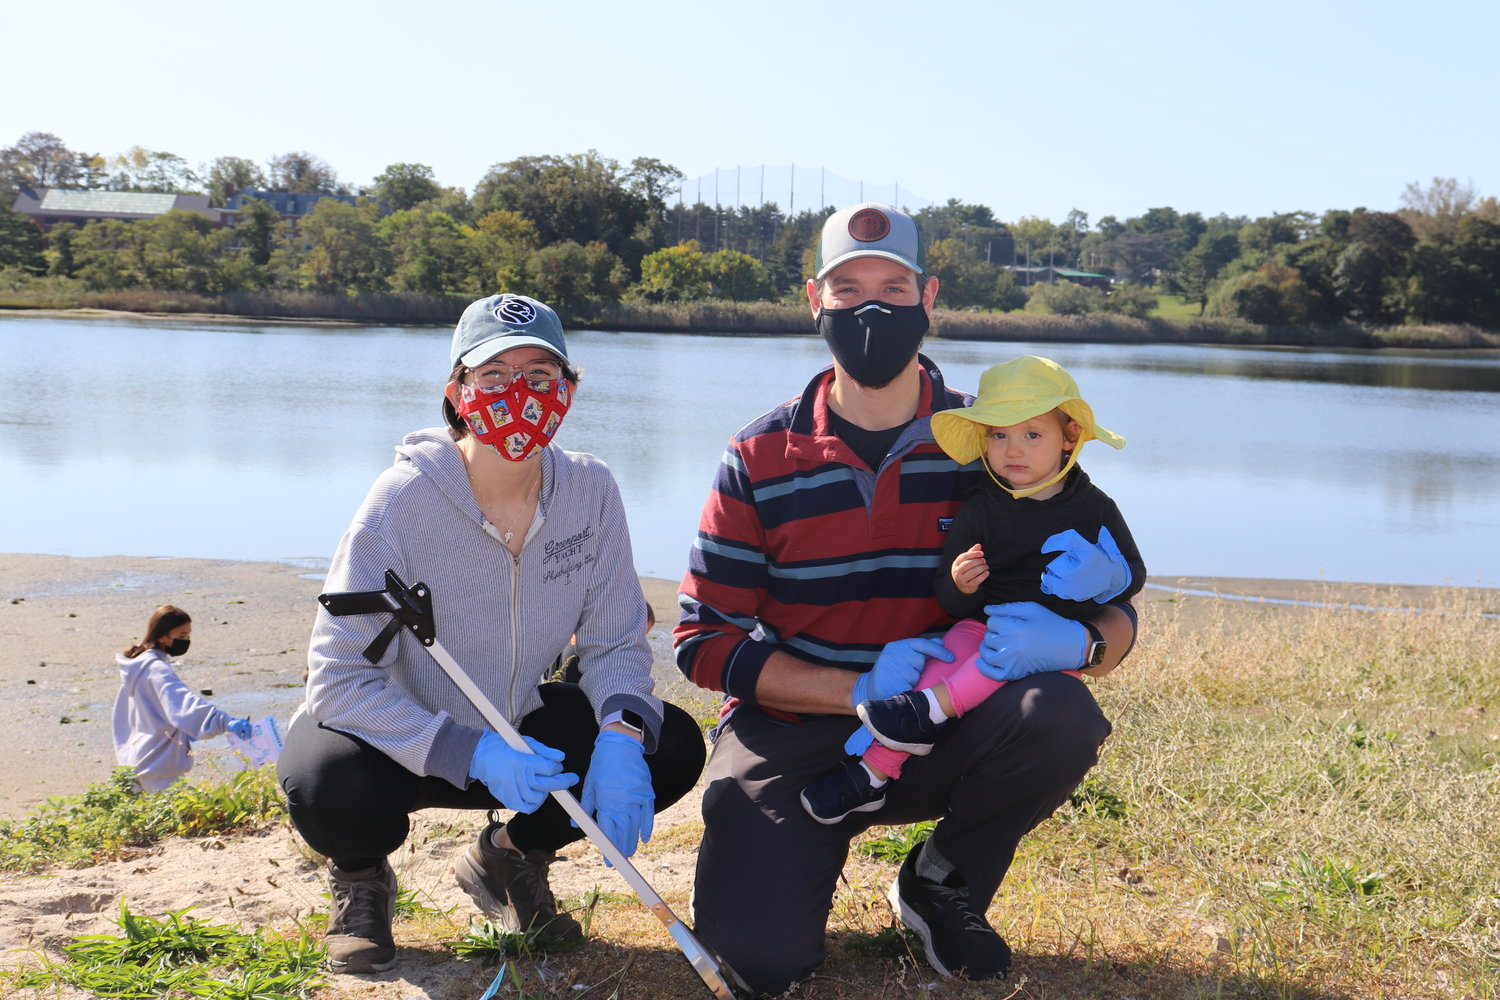 The cleanup was a family affair for Ann and Bryce Klatsky, who brought their child, C.J., along last Saturday.